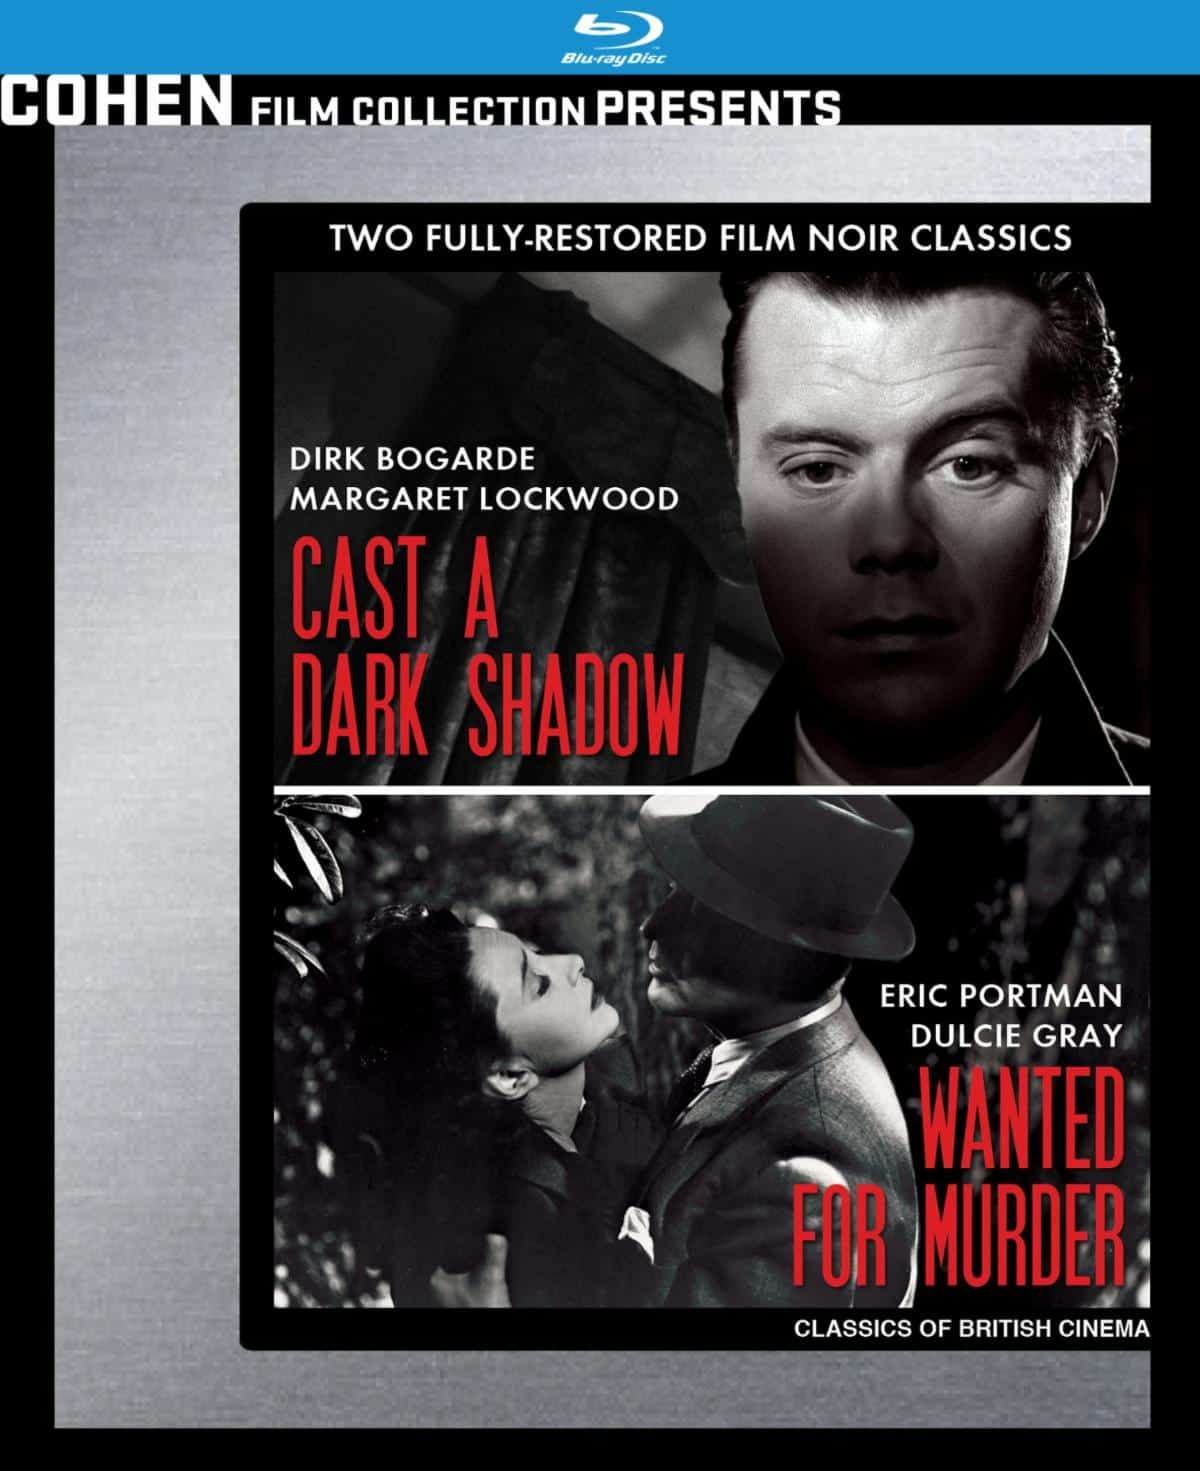 cast a dark shadow wanted for murder cohen blu-ray